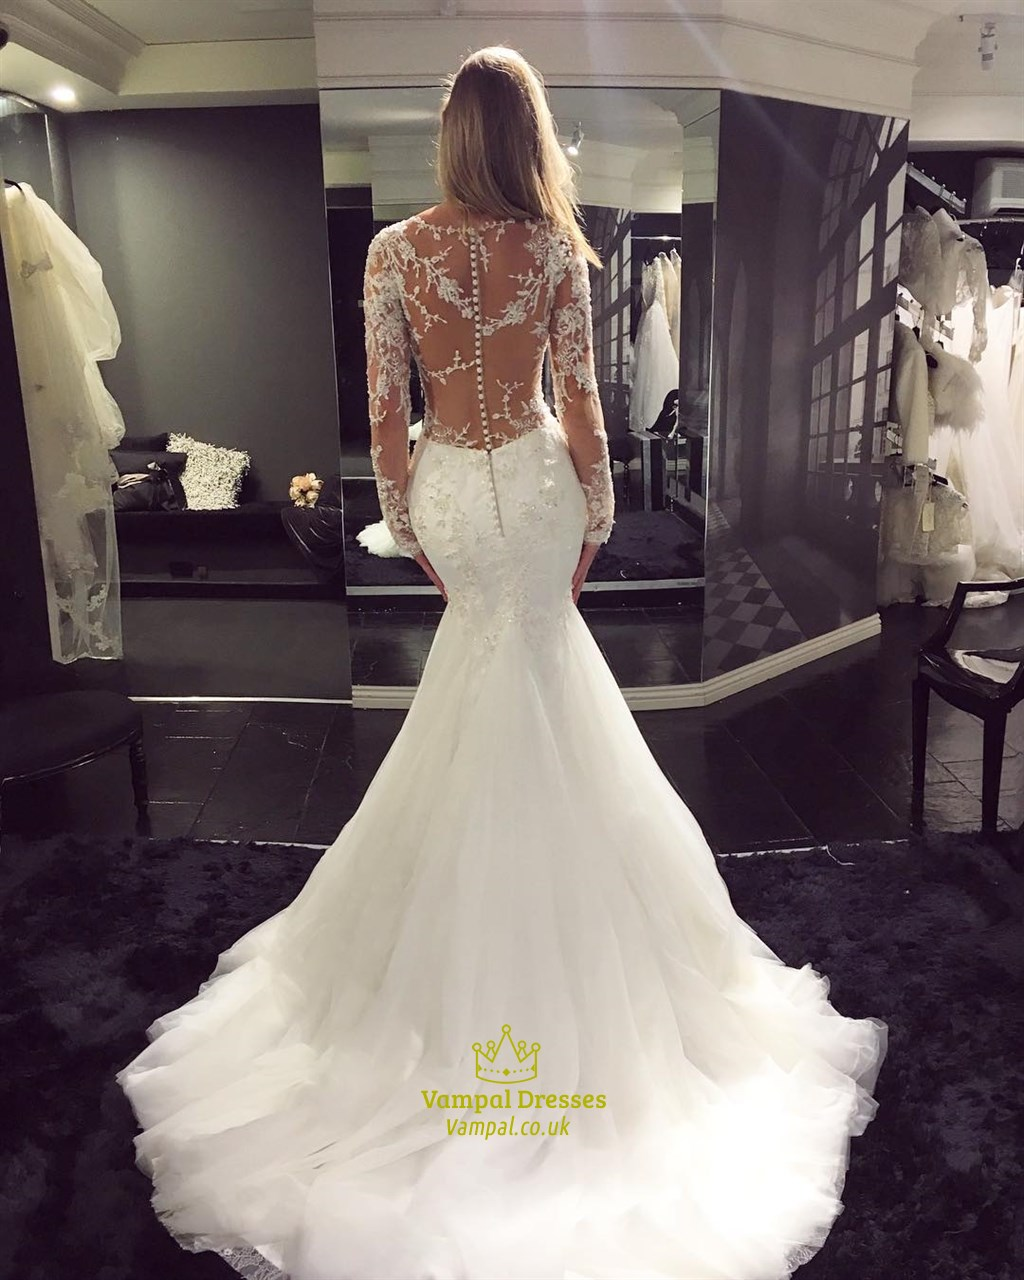 White Sheer Lace Top Long Sleeve Mermaid Wedding Dress With Train Vampal Dresses,Casual Wedding Dresses For Men Sri Lanka